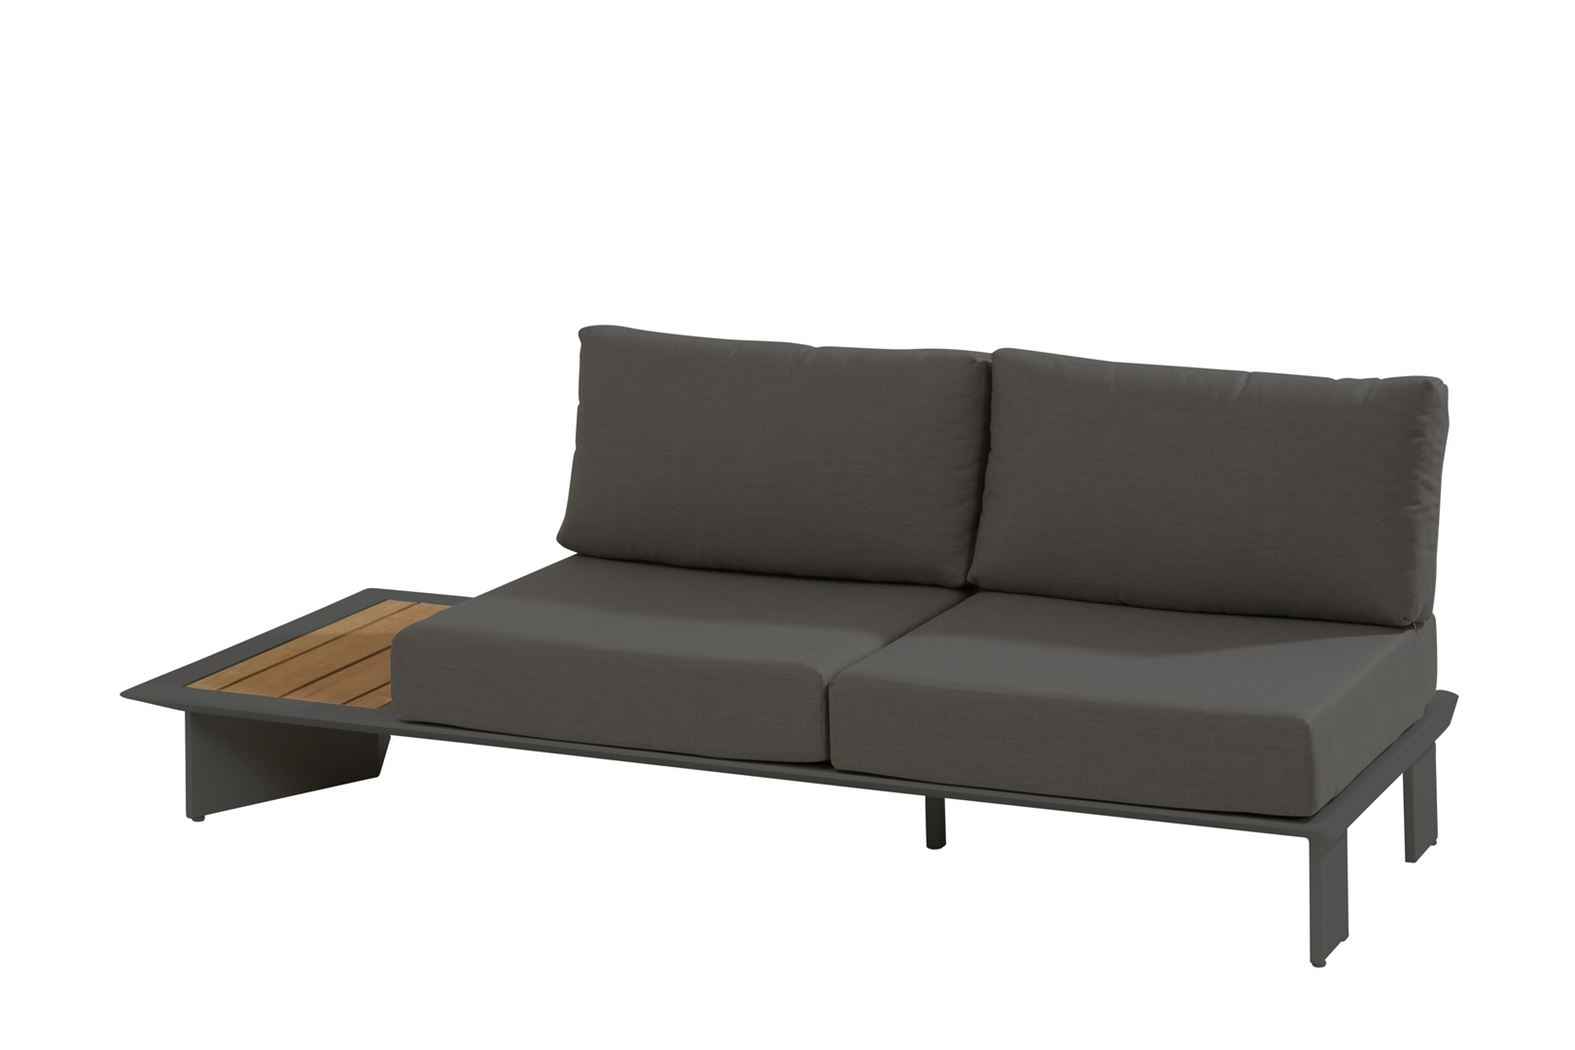 4so lovina platform 2.5 seater r with teak with 4 cushions matt carbon